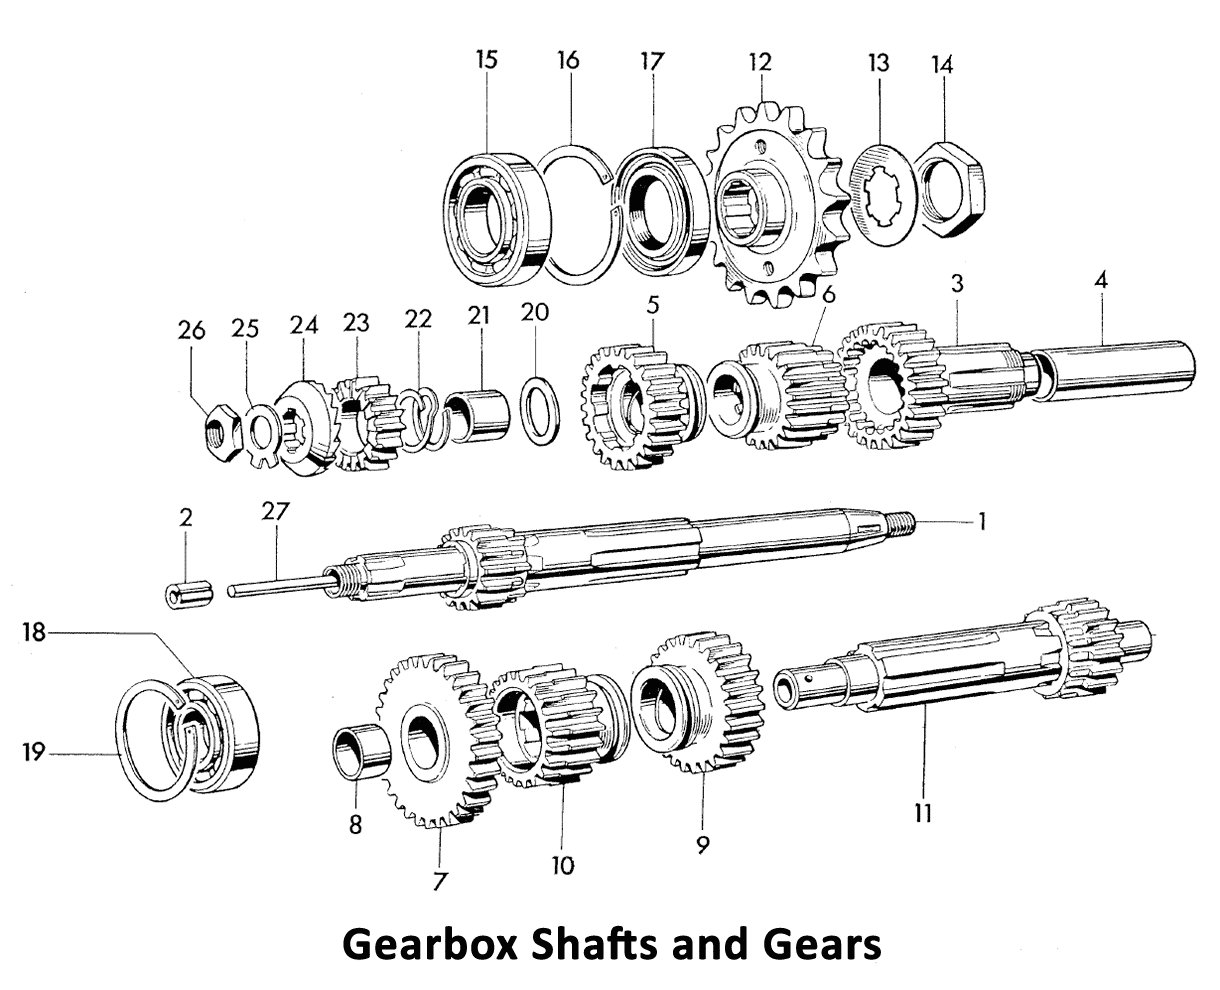 Triumph 650 1969 Gearbox Shafts and Gears - Classic Bike Spares